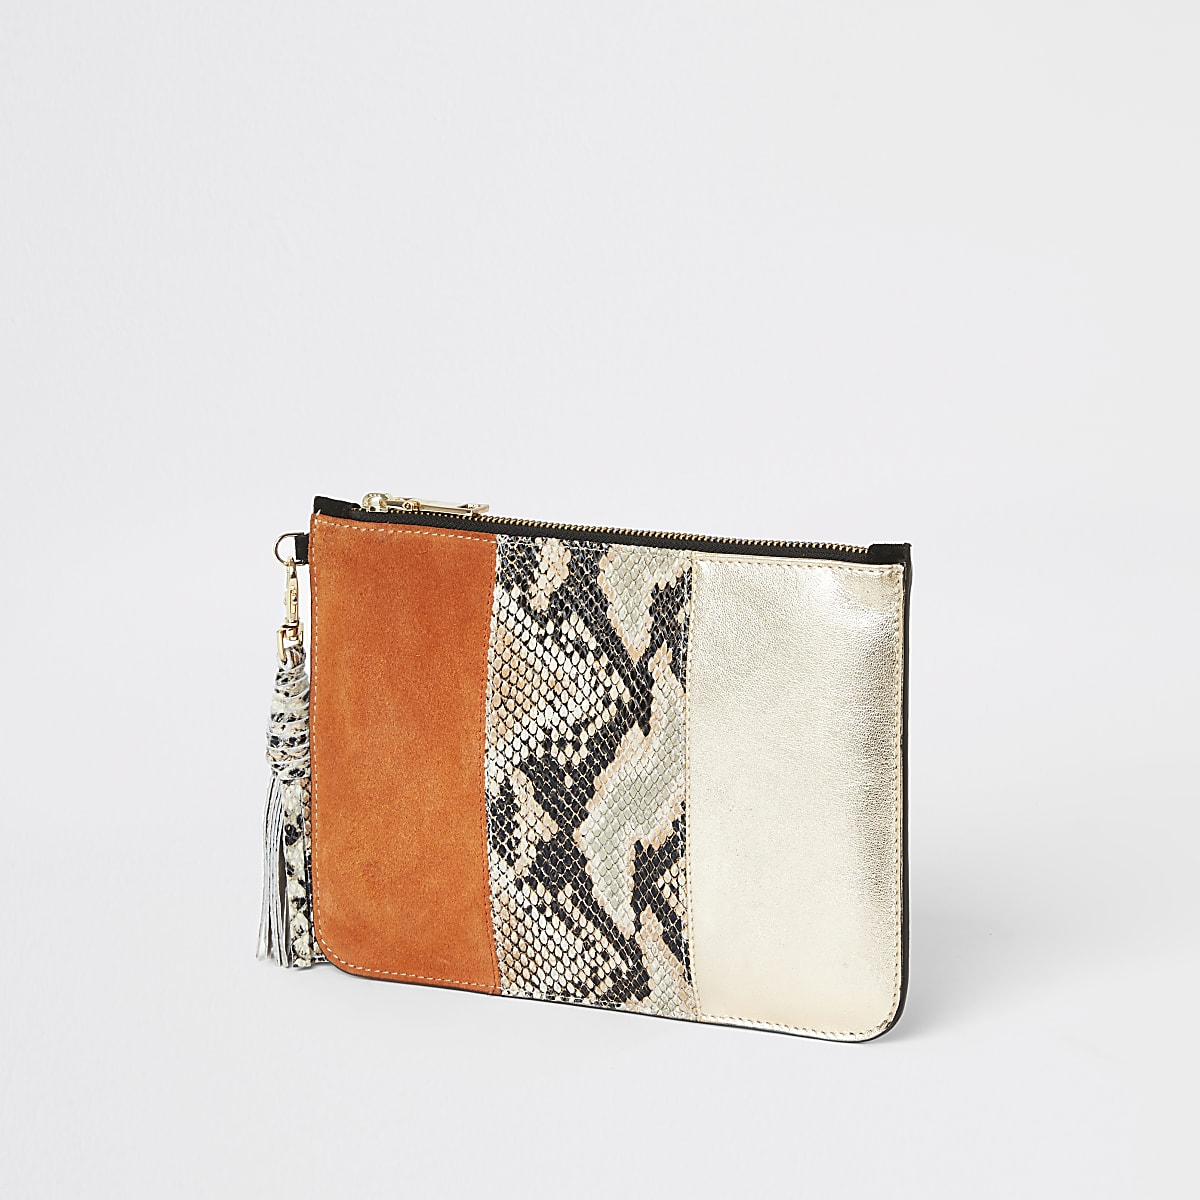 Orange snake print leather pouch clutch bag